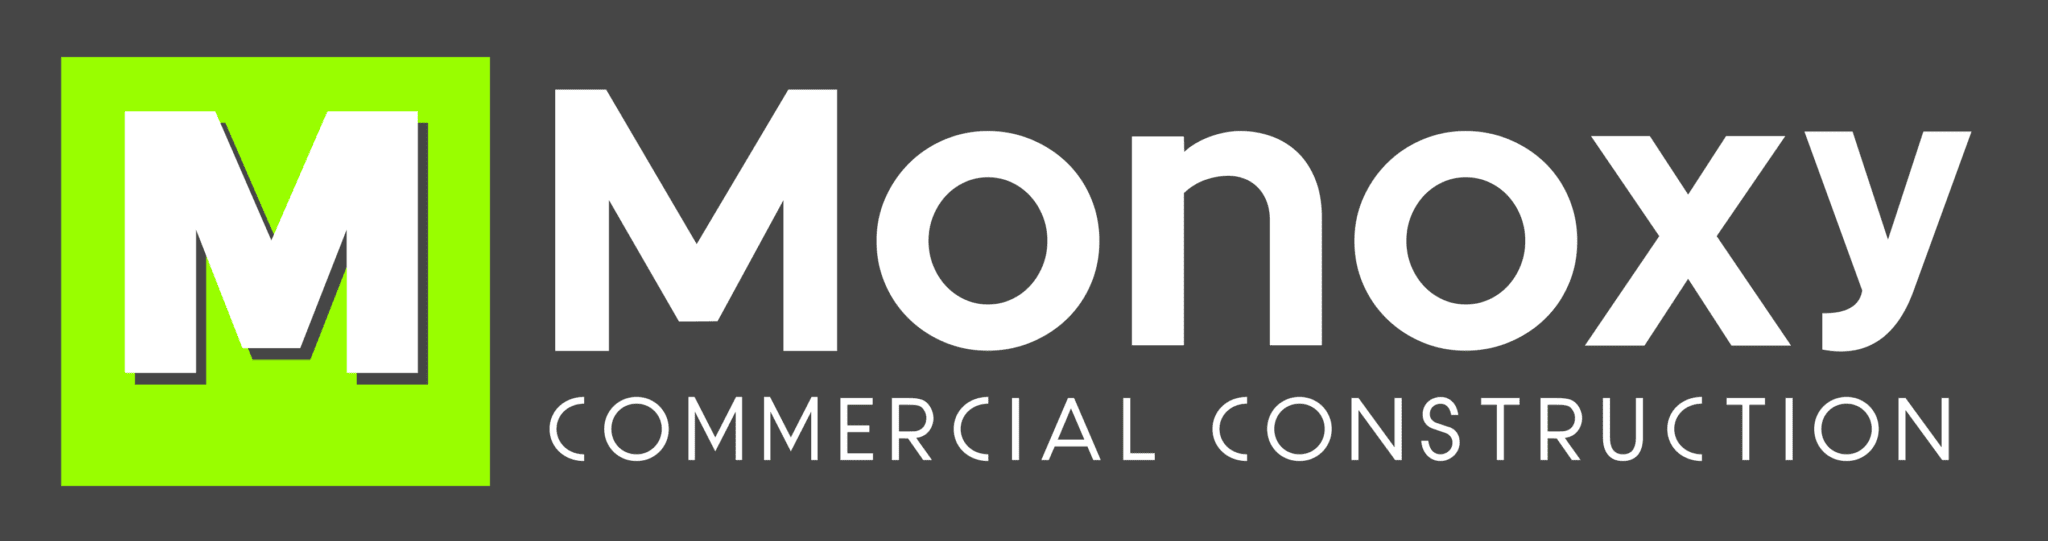 Monoxy Construction Offers Design And Construction Services Across The DFW Metroplex